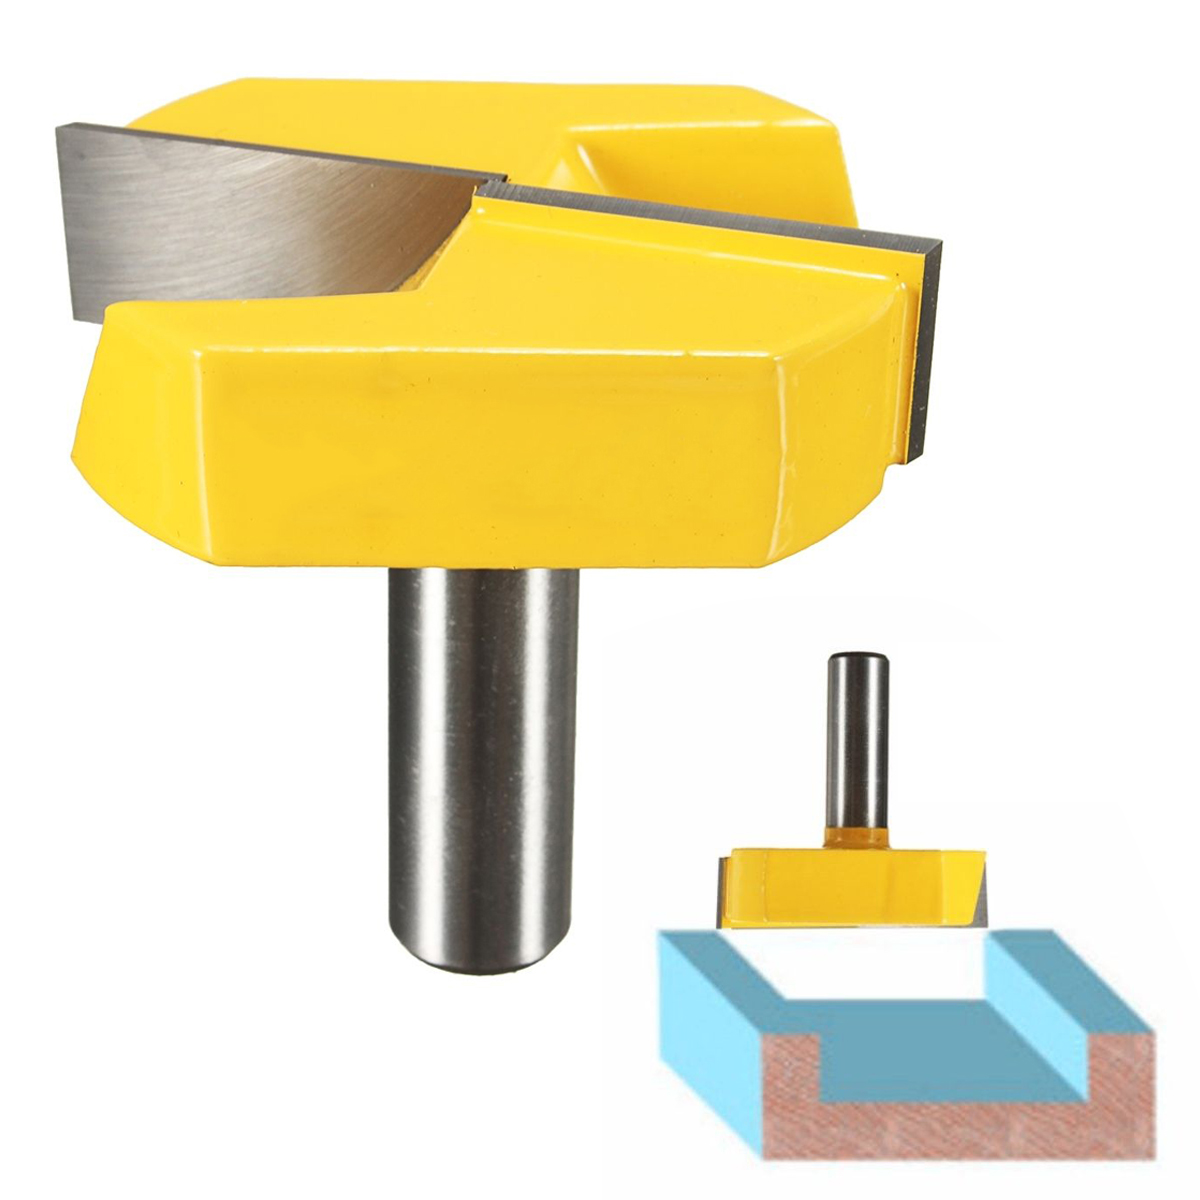 1/2 Shank 2-1/4 Diameter Bottom Cleaning Router Bit Mayitr High-precision Woodworking Milling Cutter Cutting Tools for MDF 1pc cleaning bottom router bit cutter cnc woodworking clean bits 1 2 shank dia